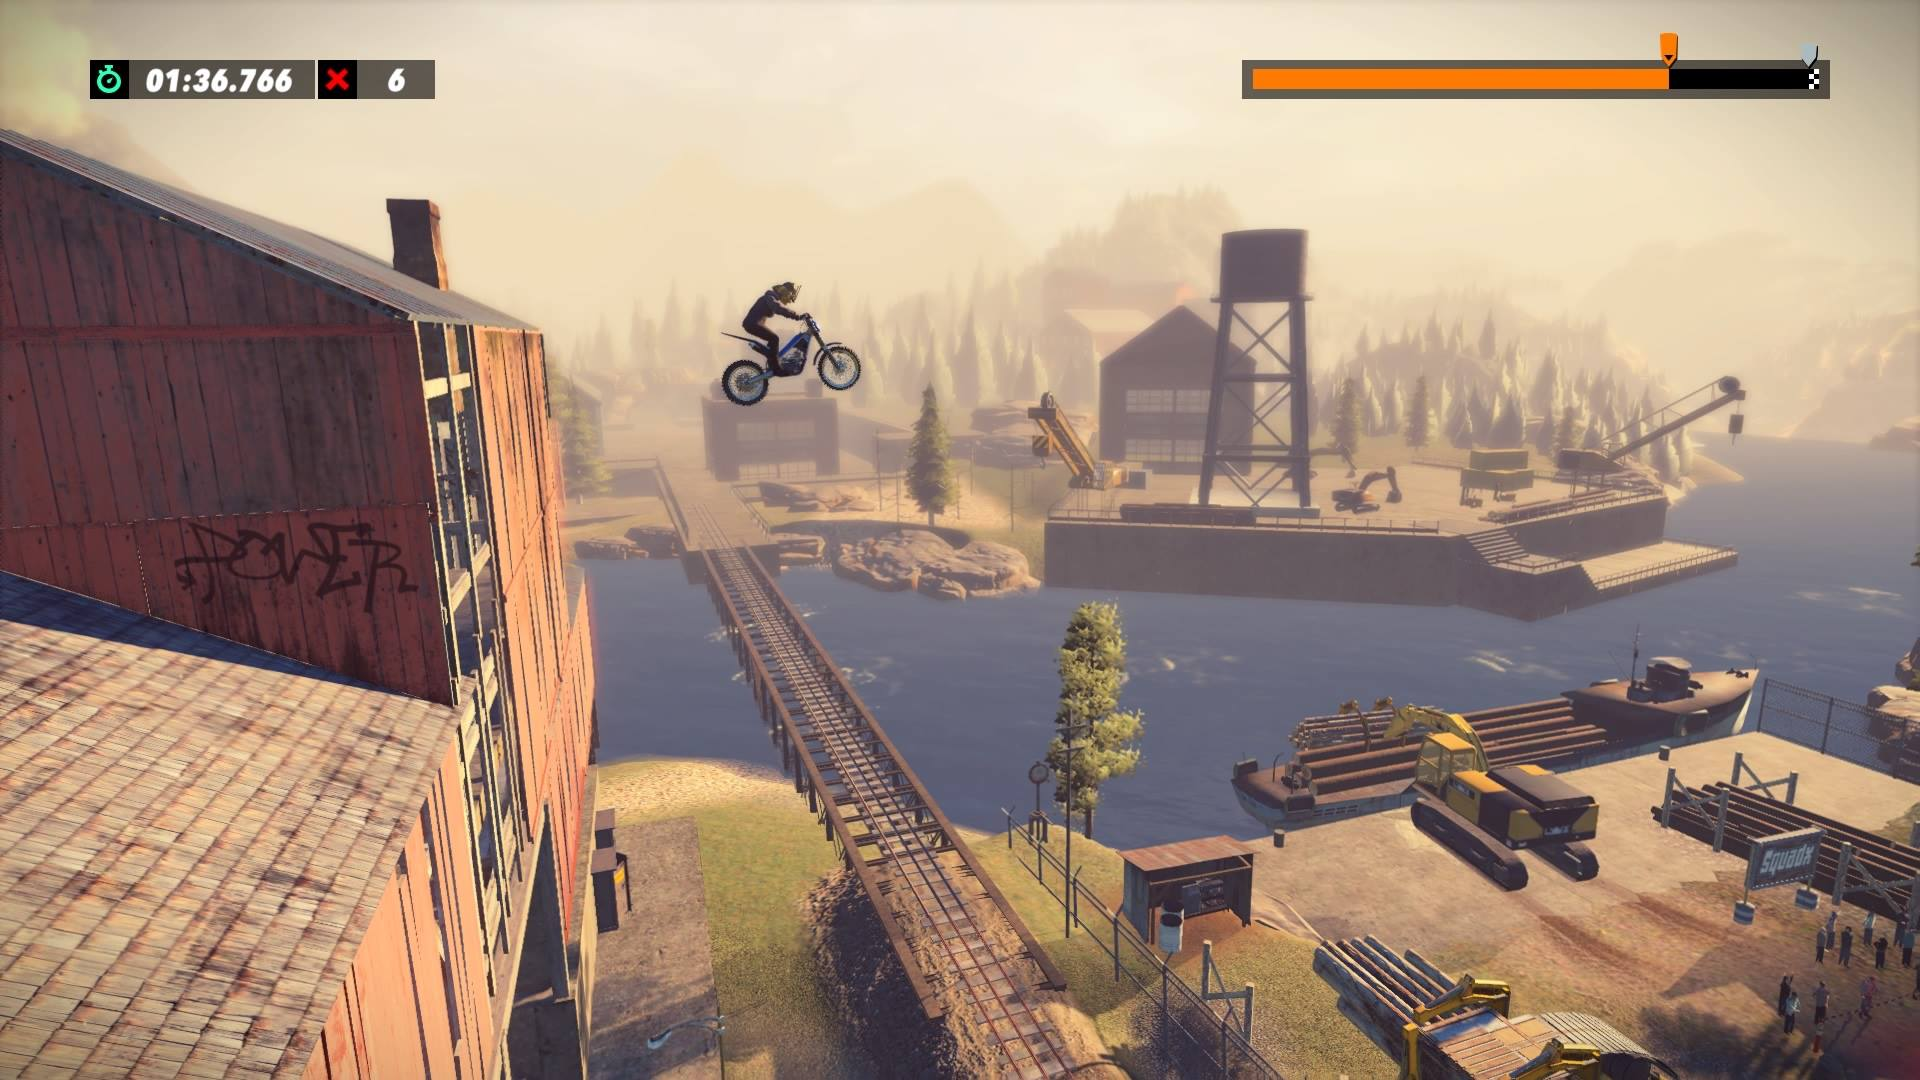 Trials Rising's camera work makes for an exhilarating game.